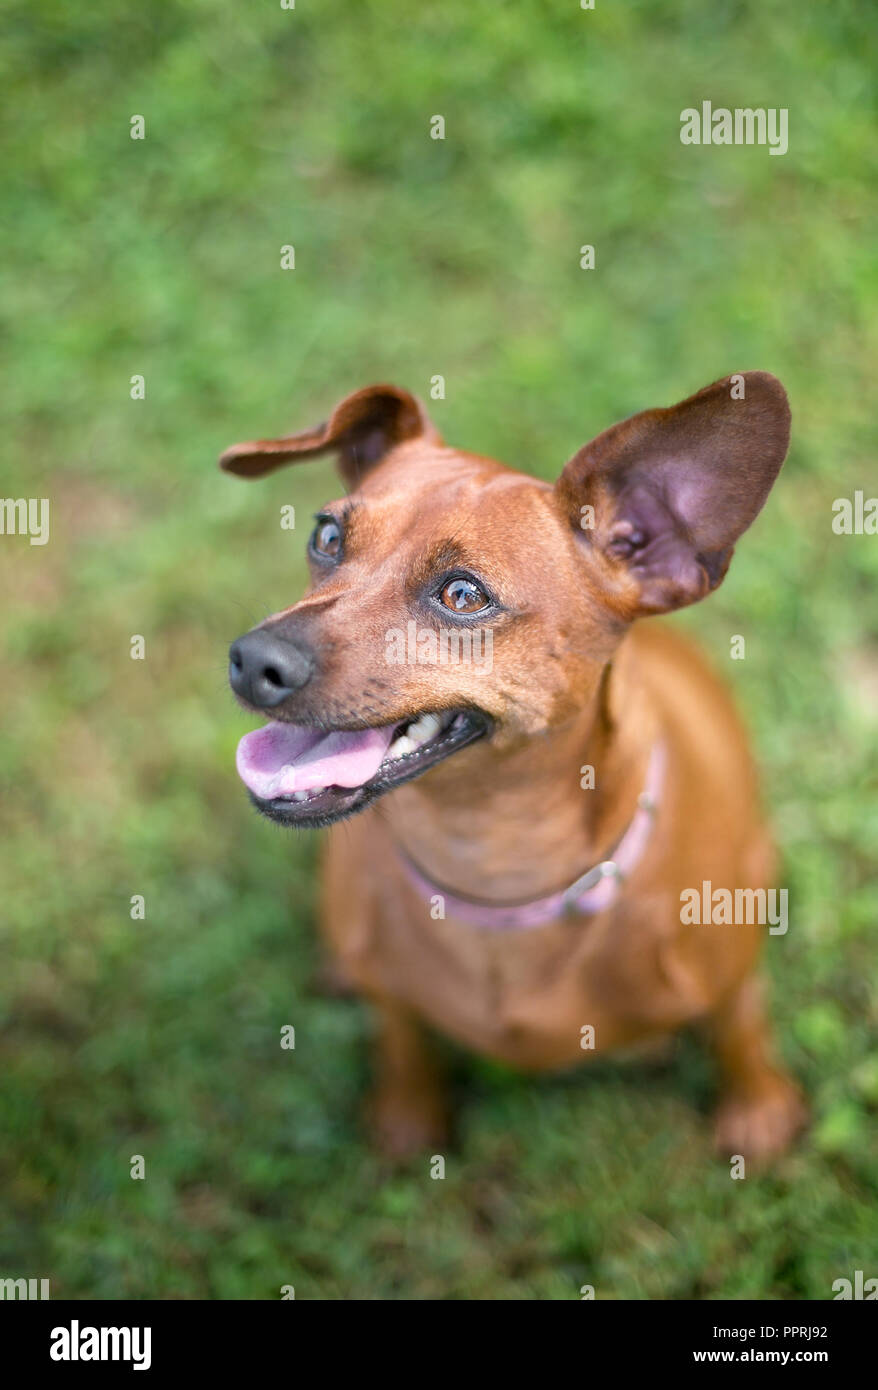 A red Miniature Pinscher dog with floppy ears sitting in the grass - Stock Image